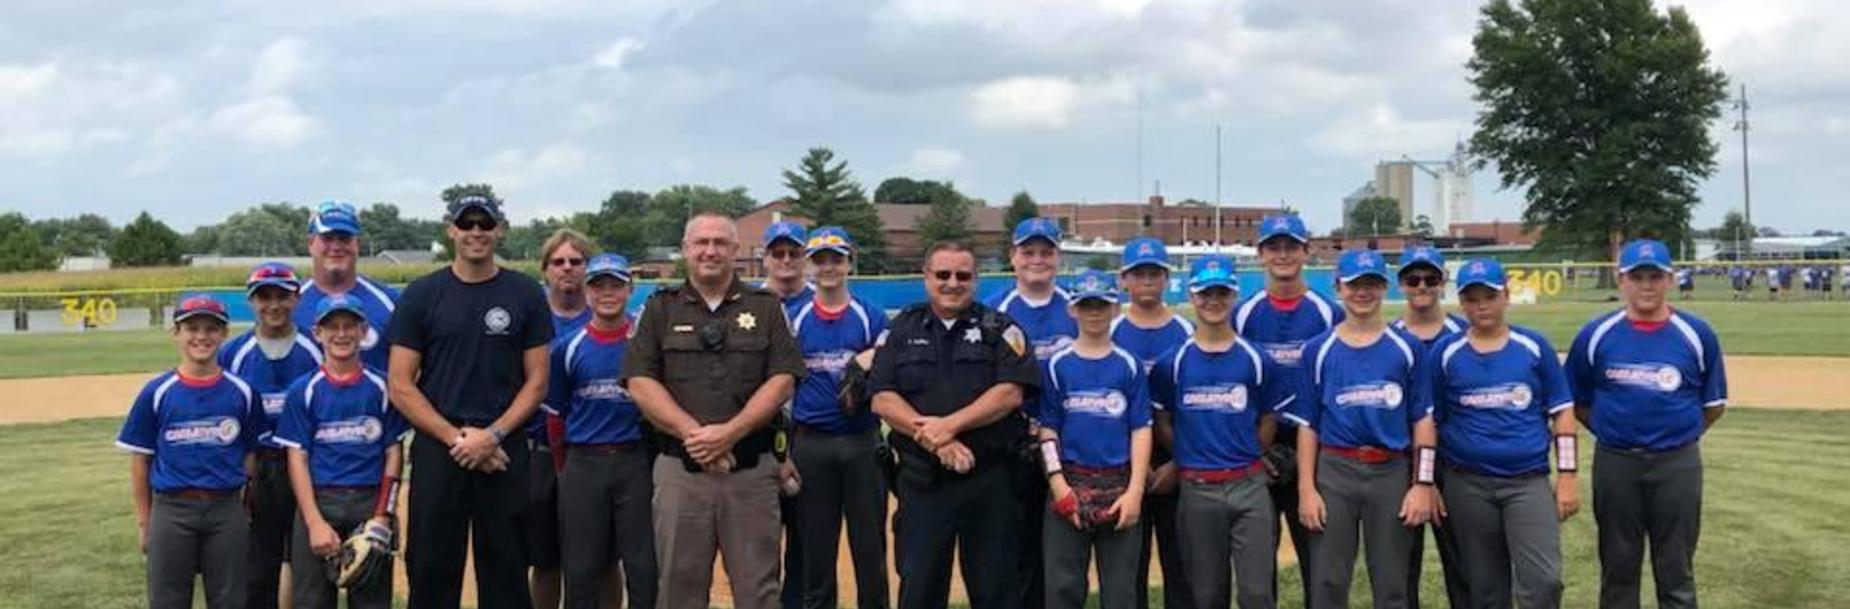 First responders at Middle School Baseball